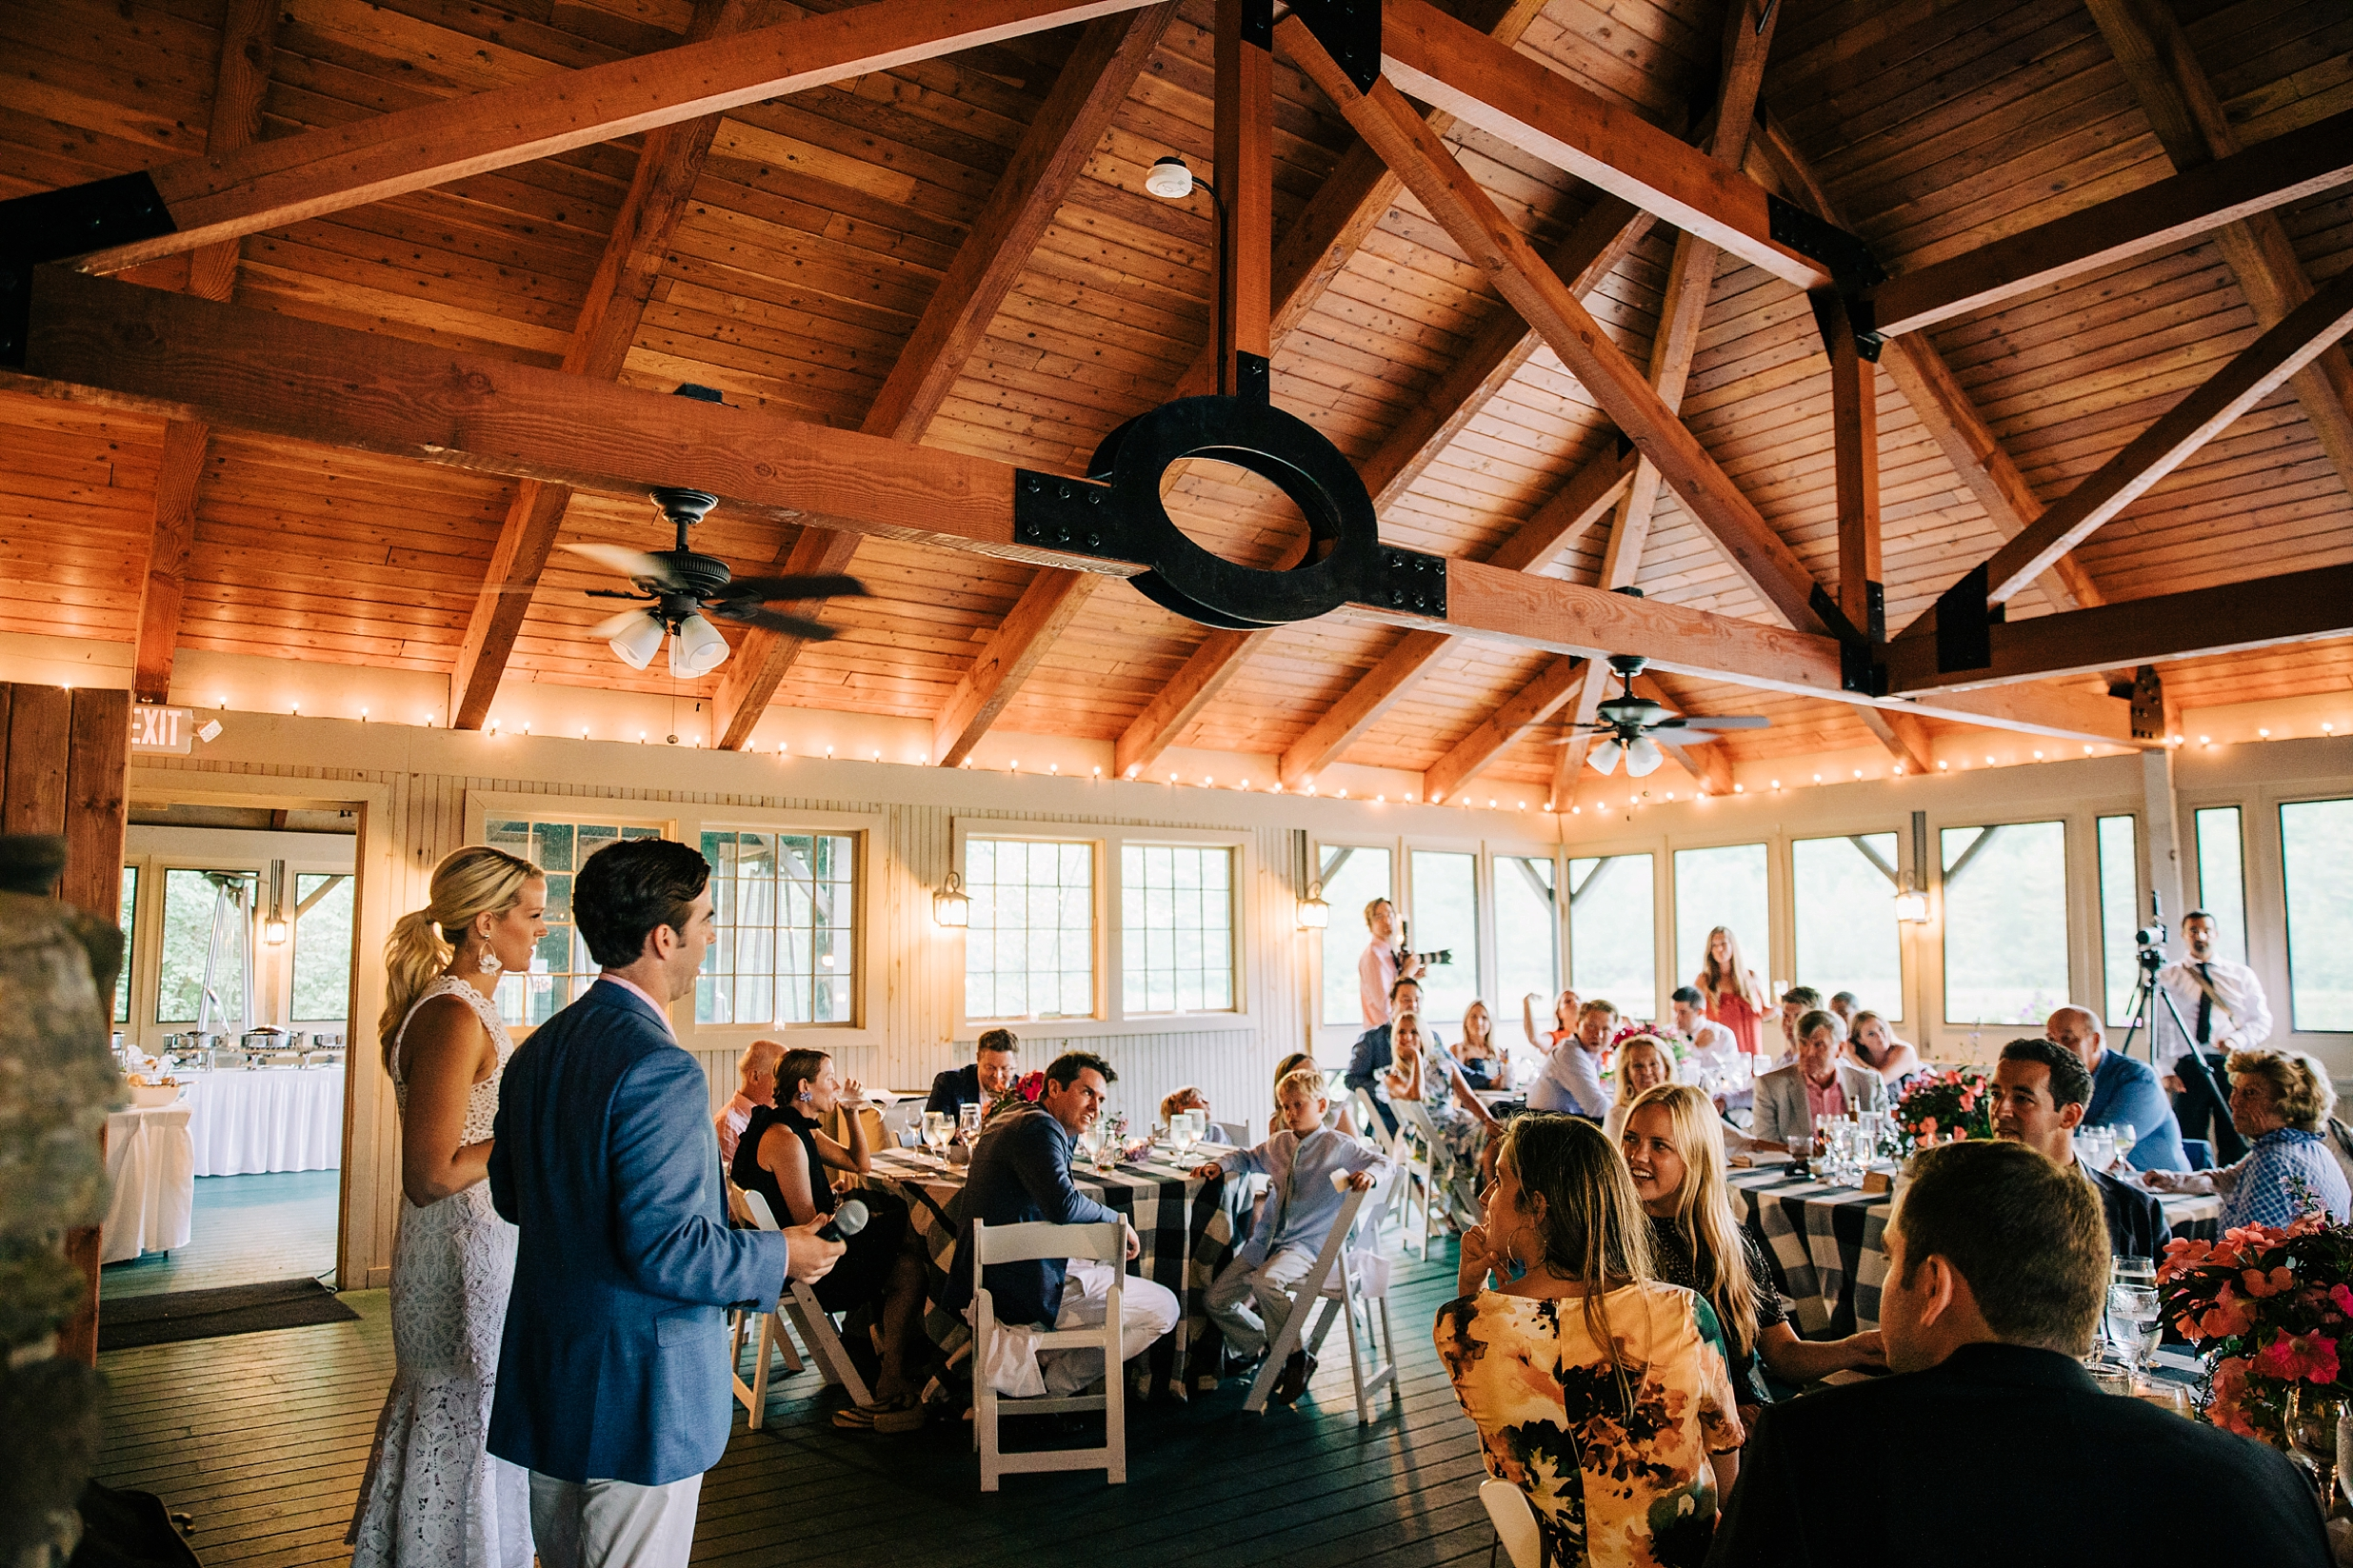 Dirty-dancing-lakeside-rehearsal-dinner-vermont_0012.jpg